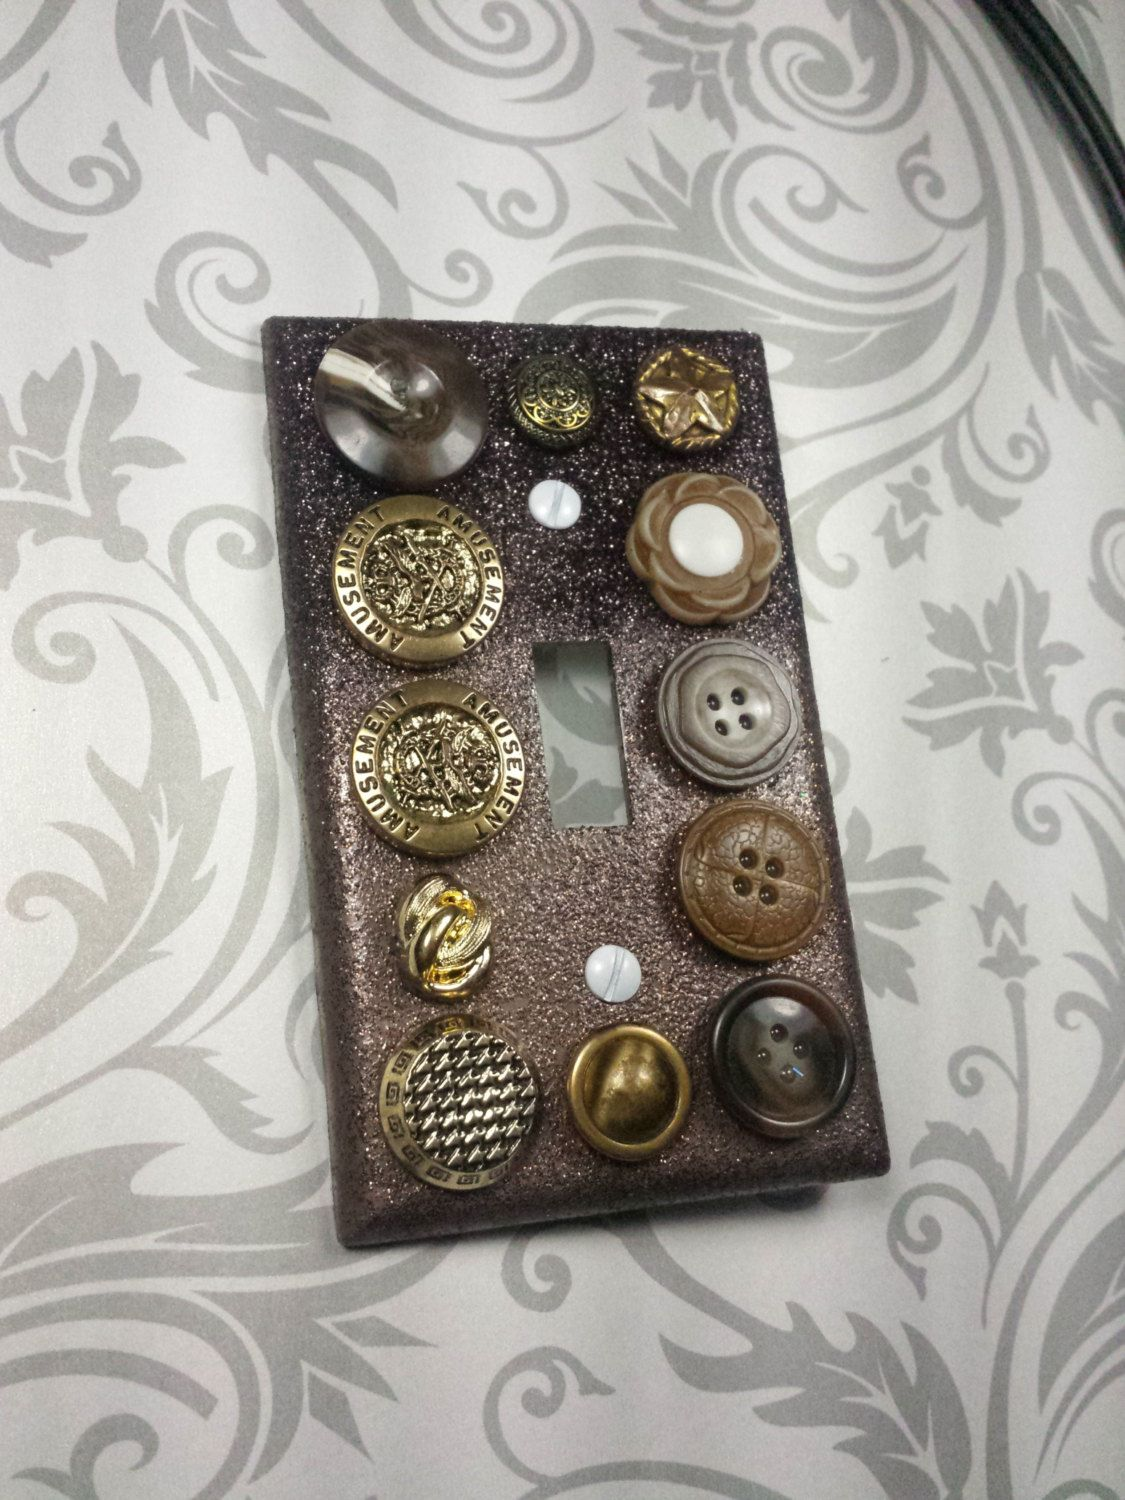 Vintage Light Switch Plate Covers Glitter Light Switch Plate Cover Embellished With Vintage Buttons